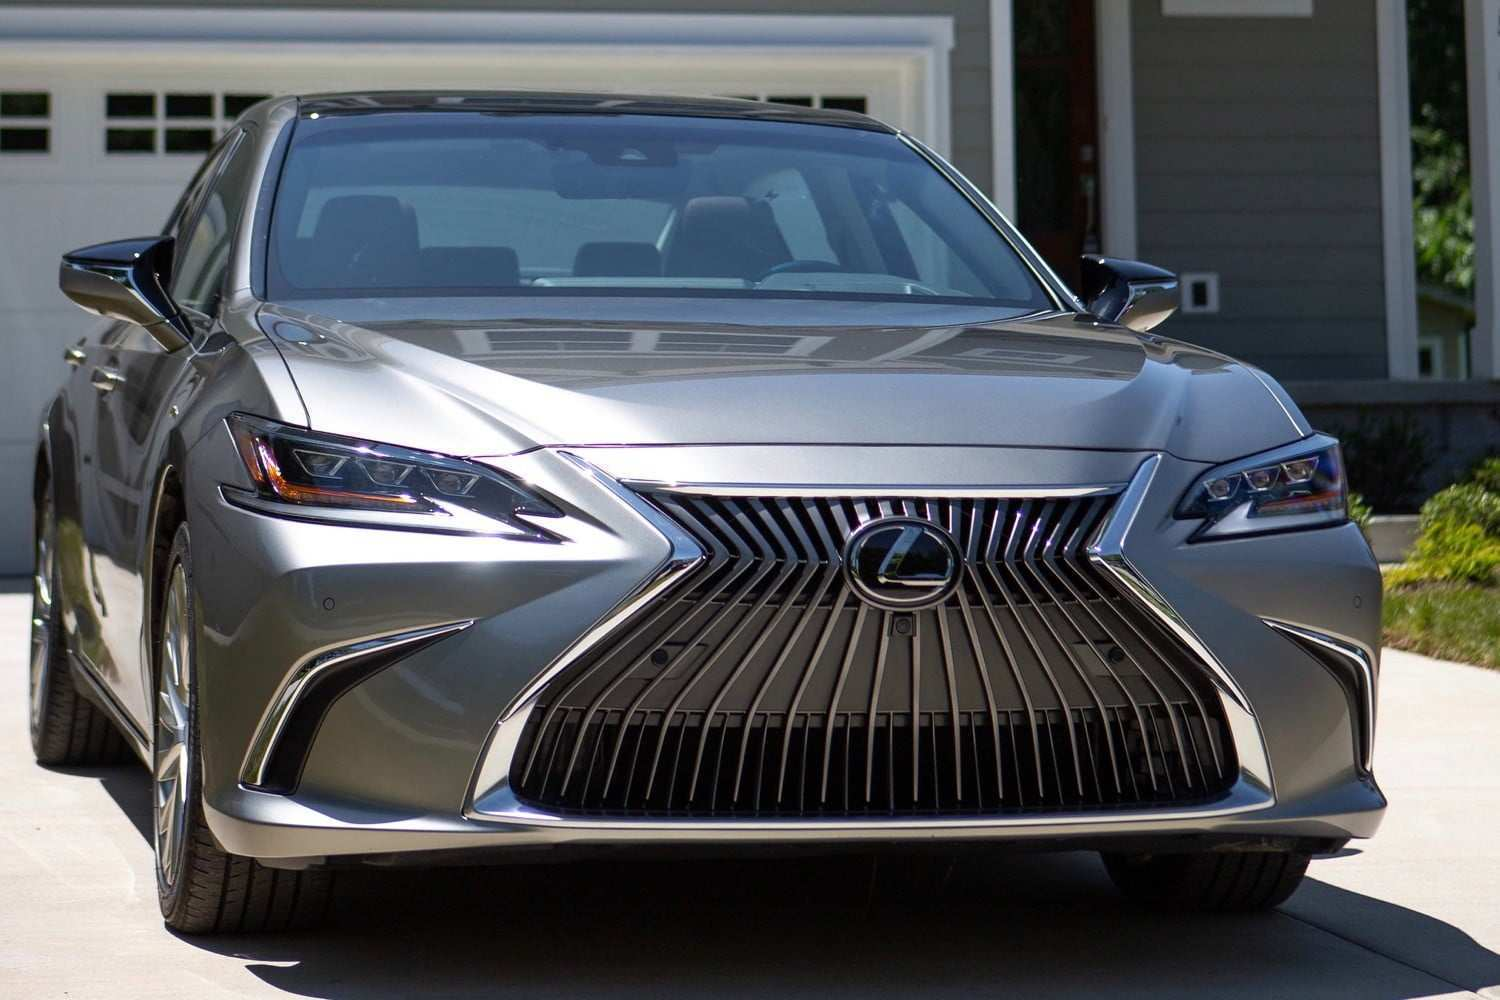 66 New 2019 Lexus Cars Spesification for 2019 Lexus Cars